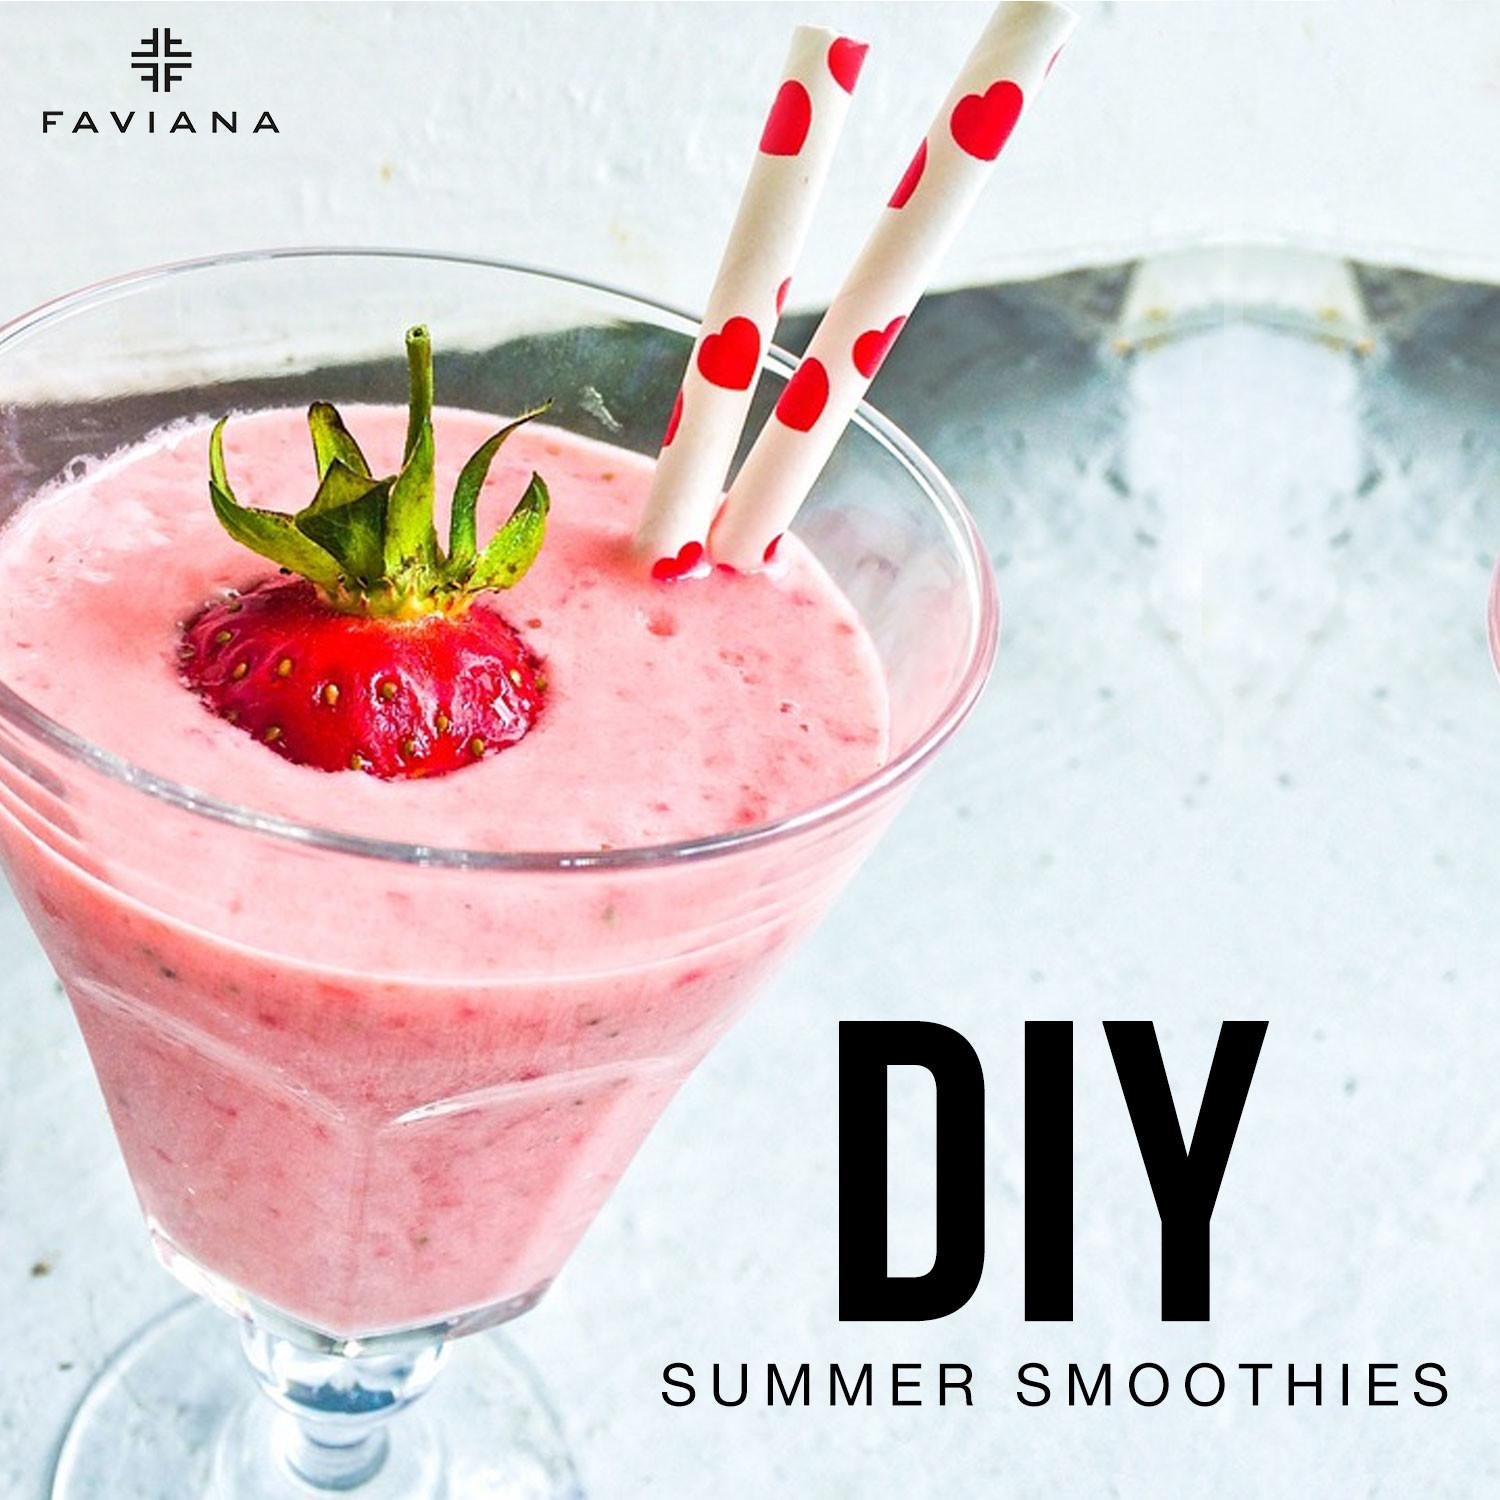 Diy Summer Smoothies Glam Gowns Blog